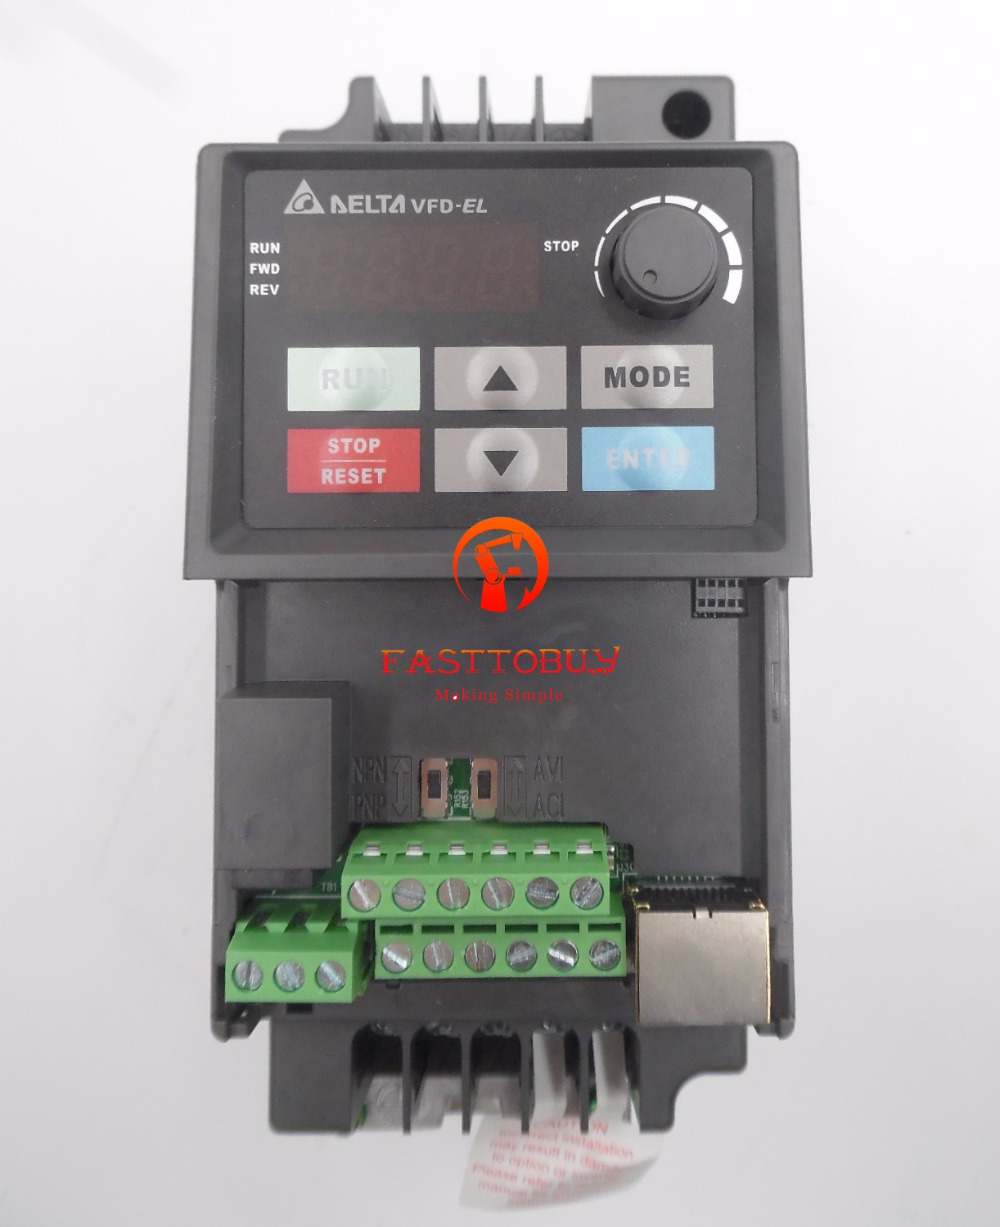 Delta inverter vfd variable frequency drive vfd007el43a for Inverter for 3 phase motor